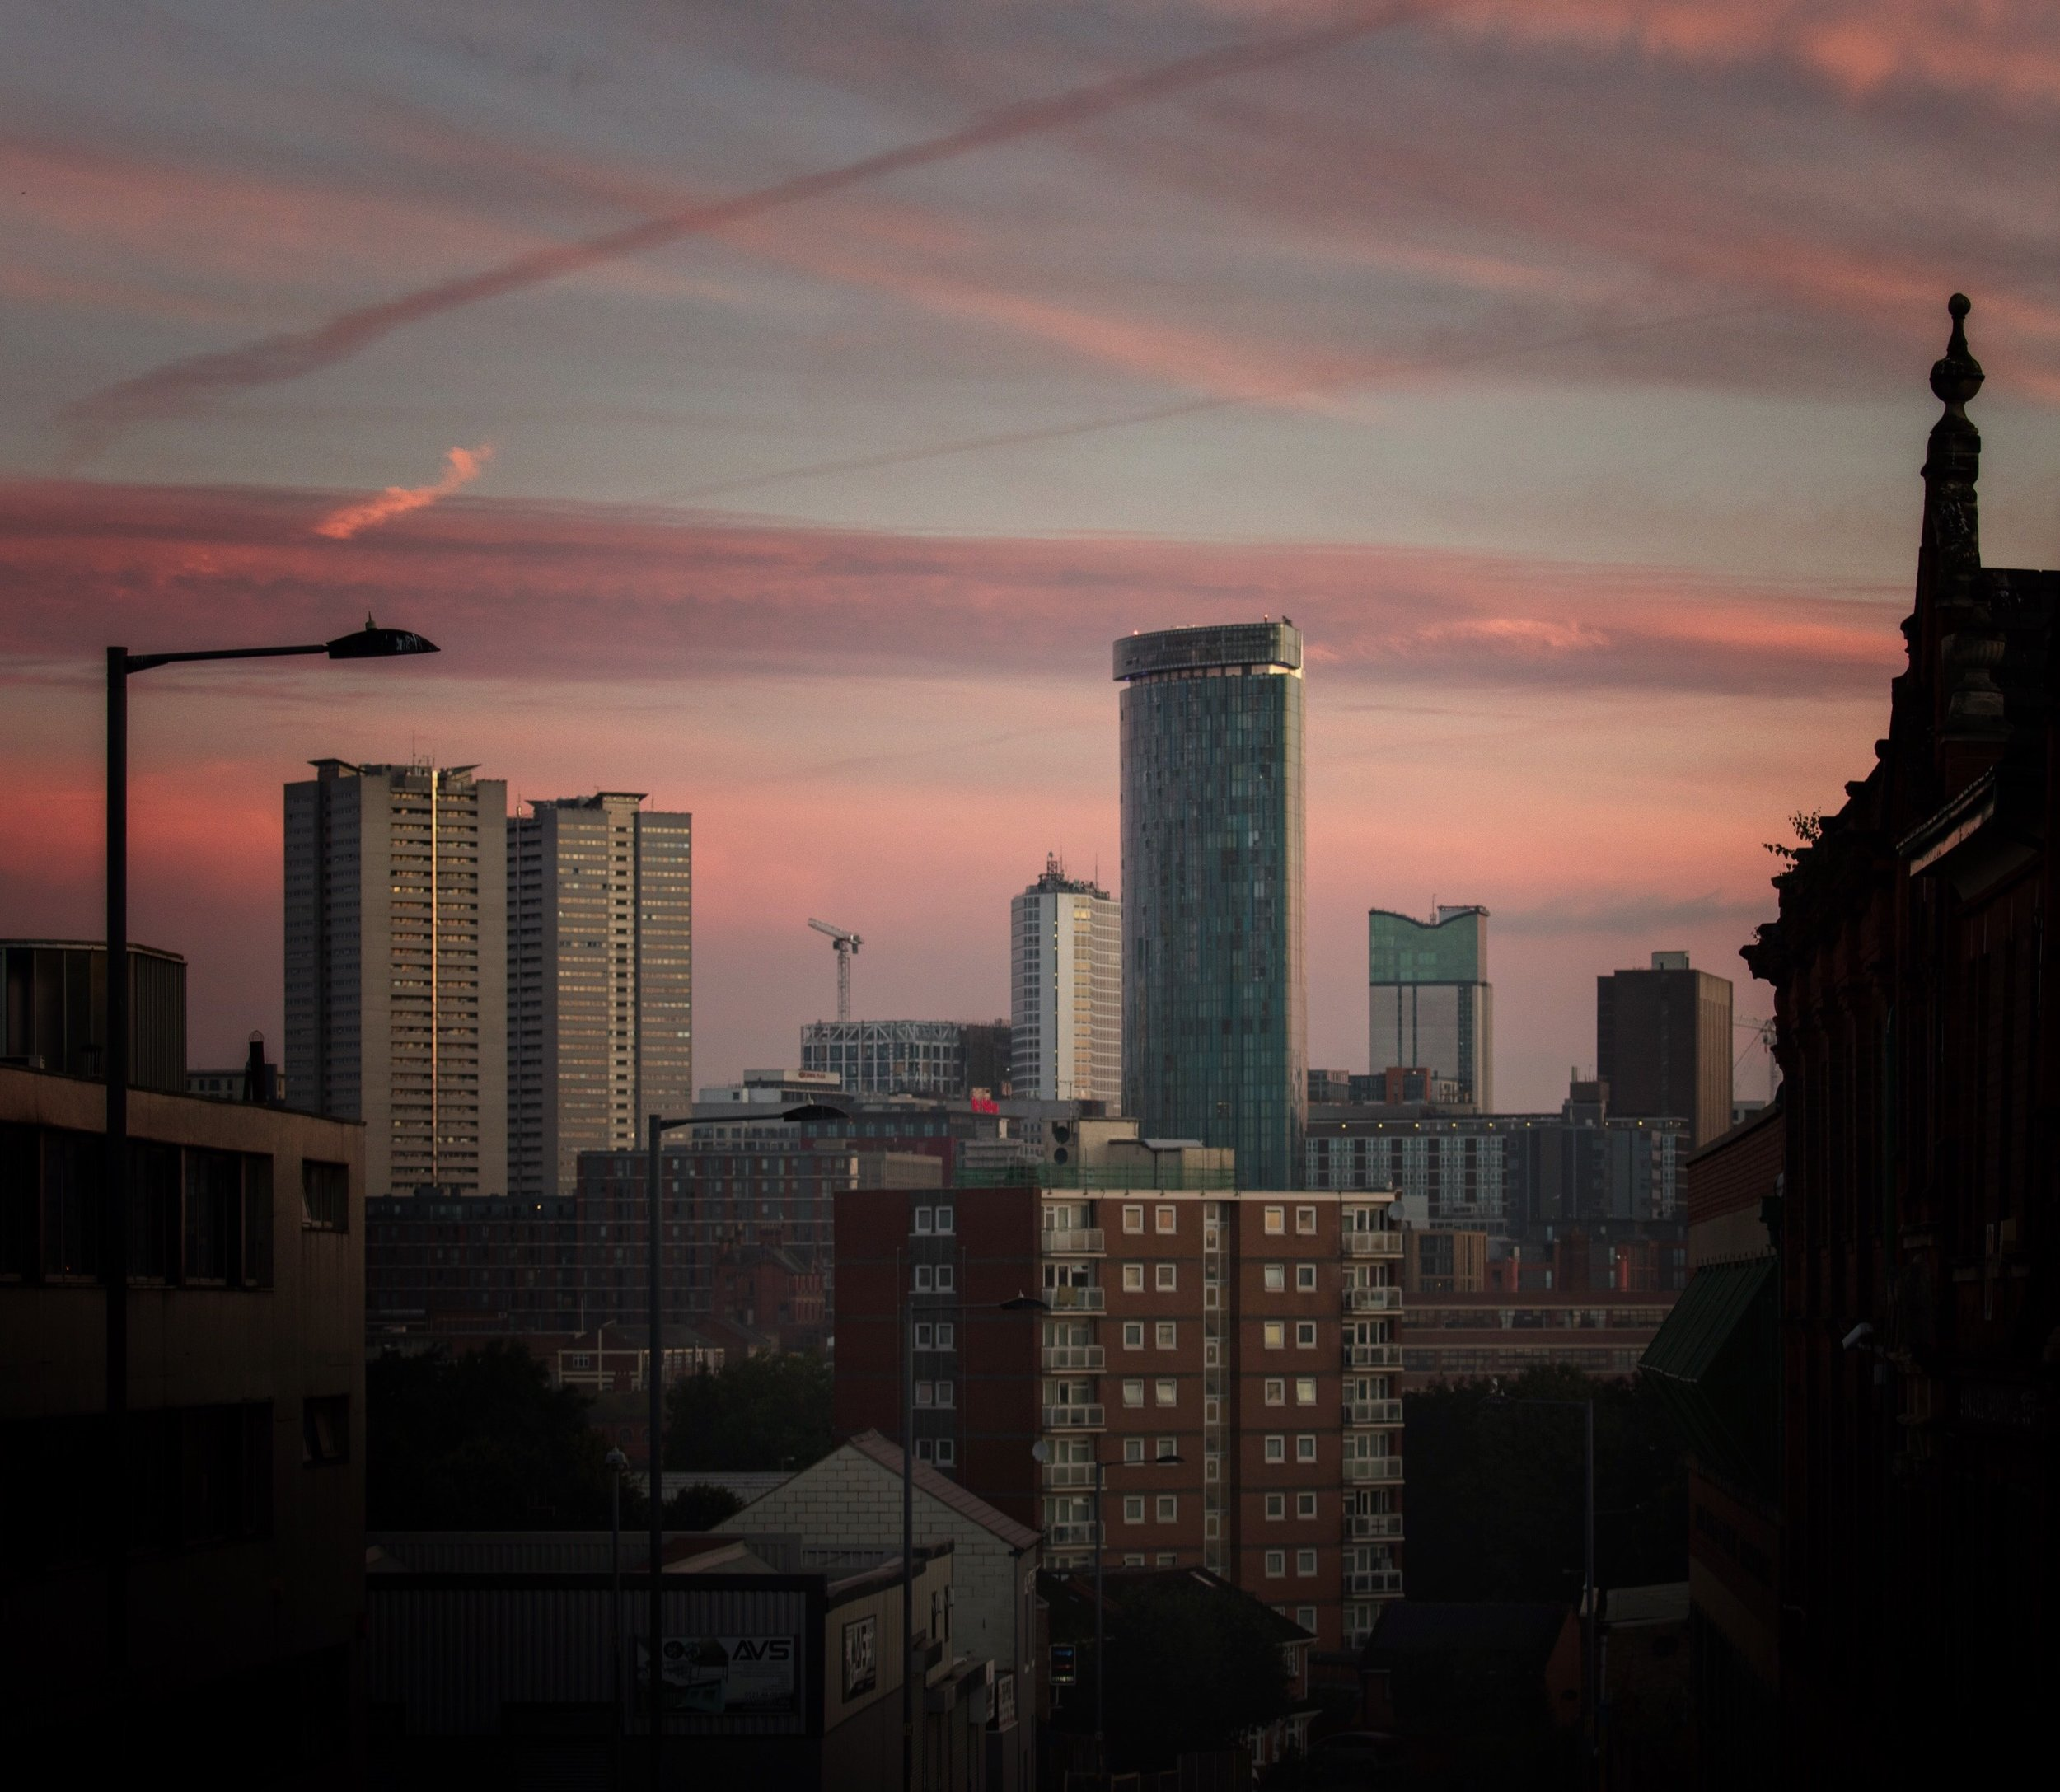 brumrise-11th-august-2017_36126955520_o.jpg